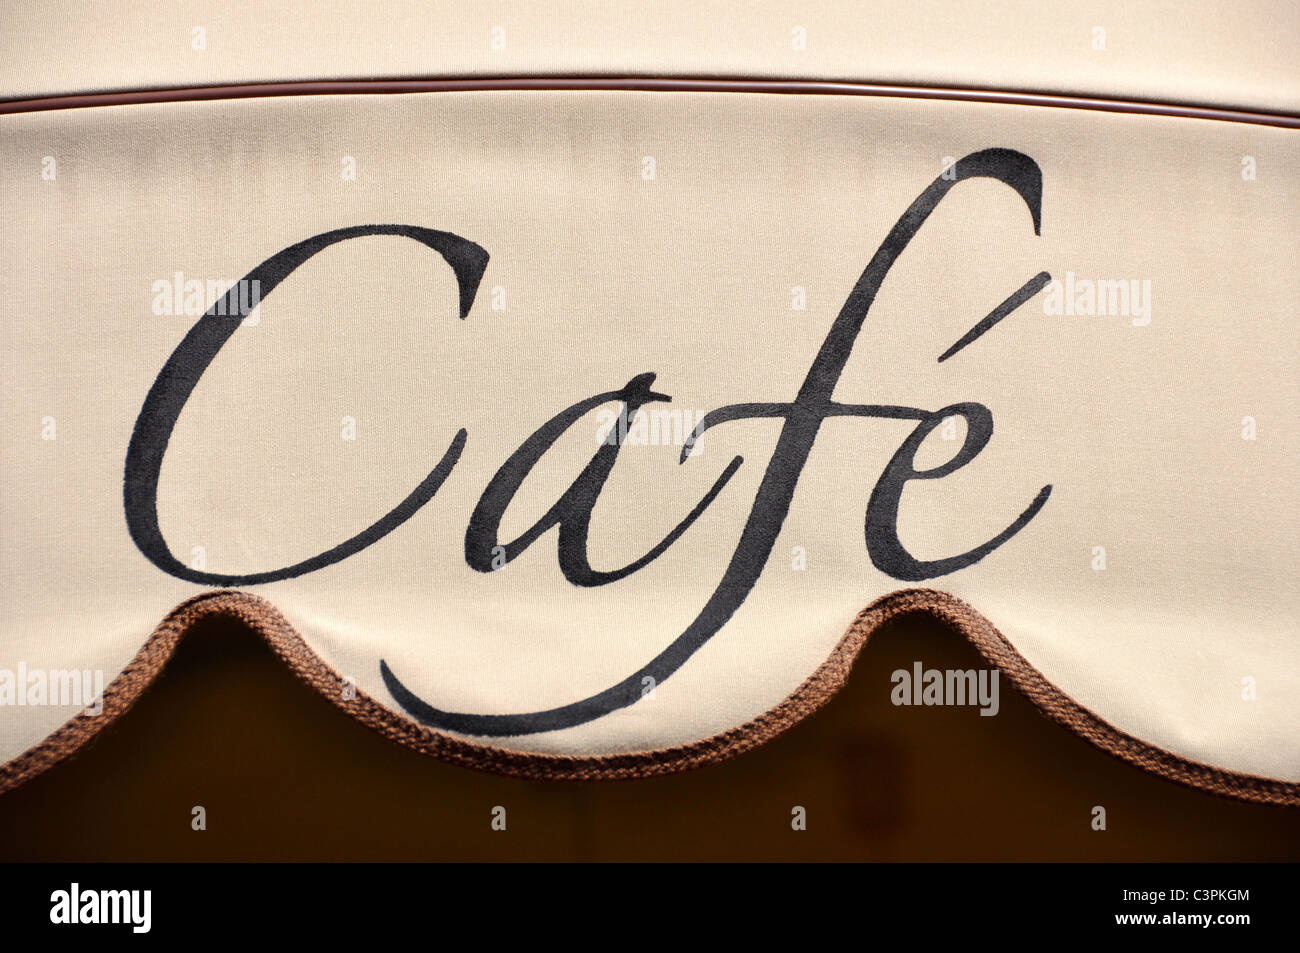 Café awning in Italy - Stock Image